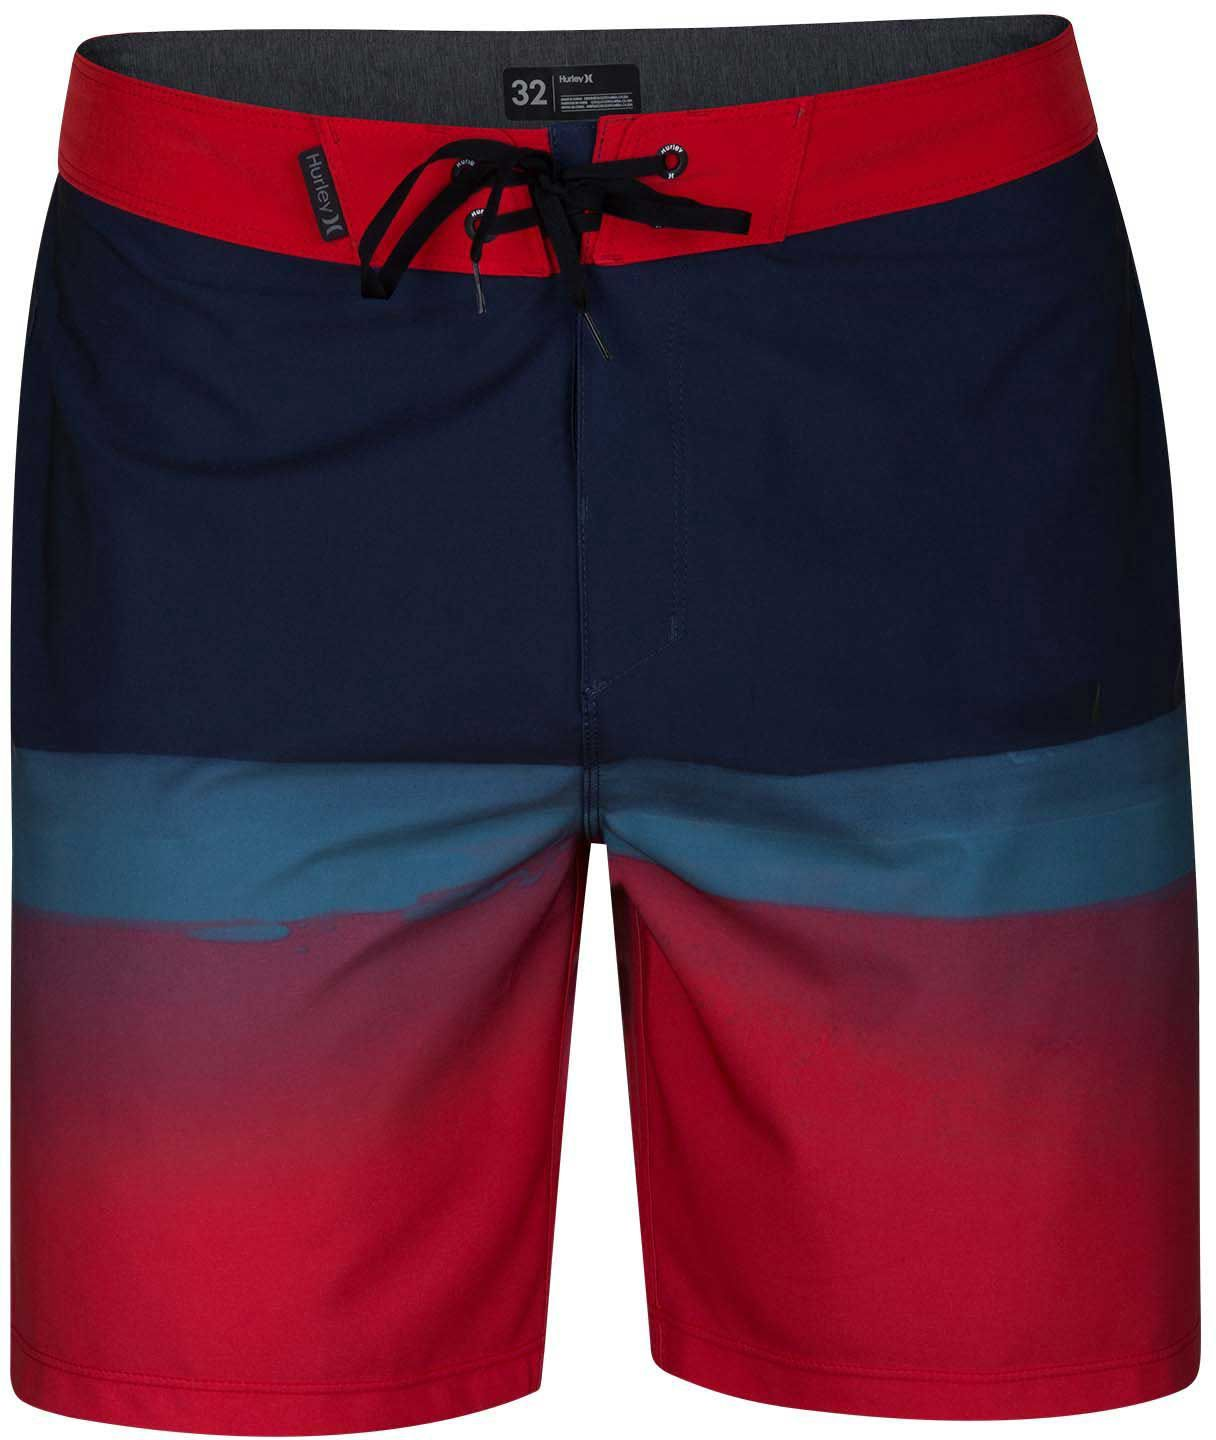 b3dc72313ed Hurley Men's Phantom Pure Glass 20†Board Shorts in 2019 | Products ...